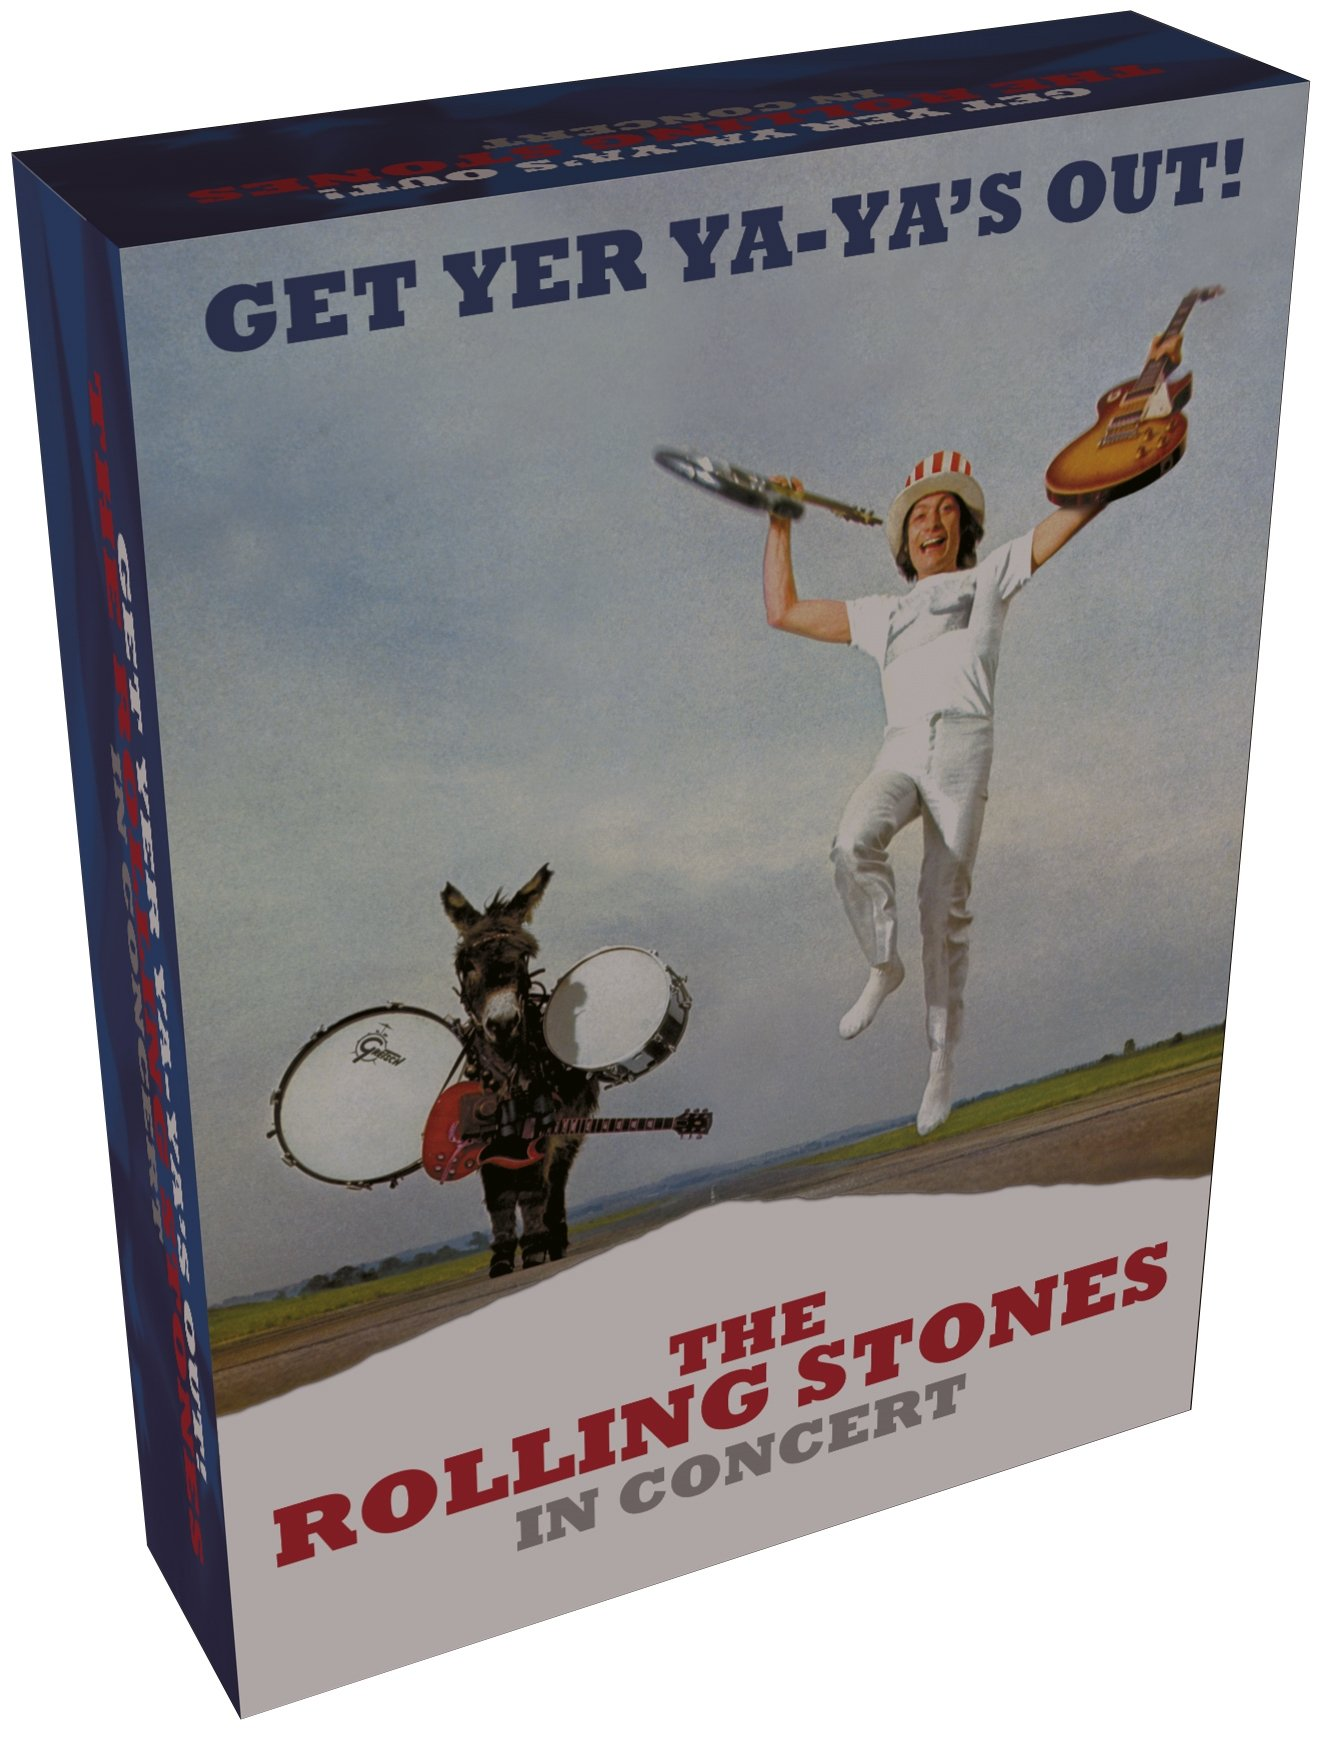 Get Yer Ya-Ya's Out! The Rolling Stones In Concert [40th Anniversary Deluxe Box Set] [3 CDs + 1 DVD] by CD